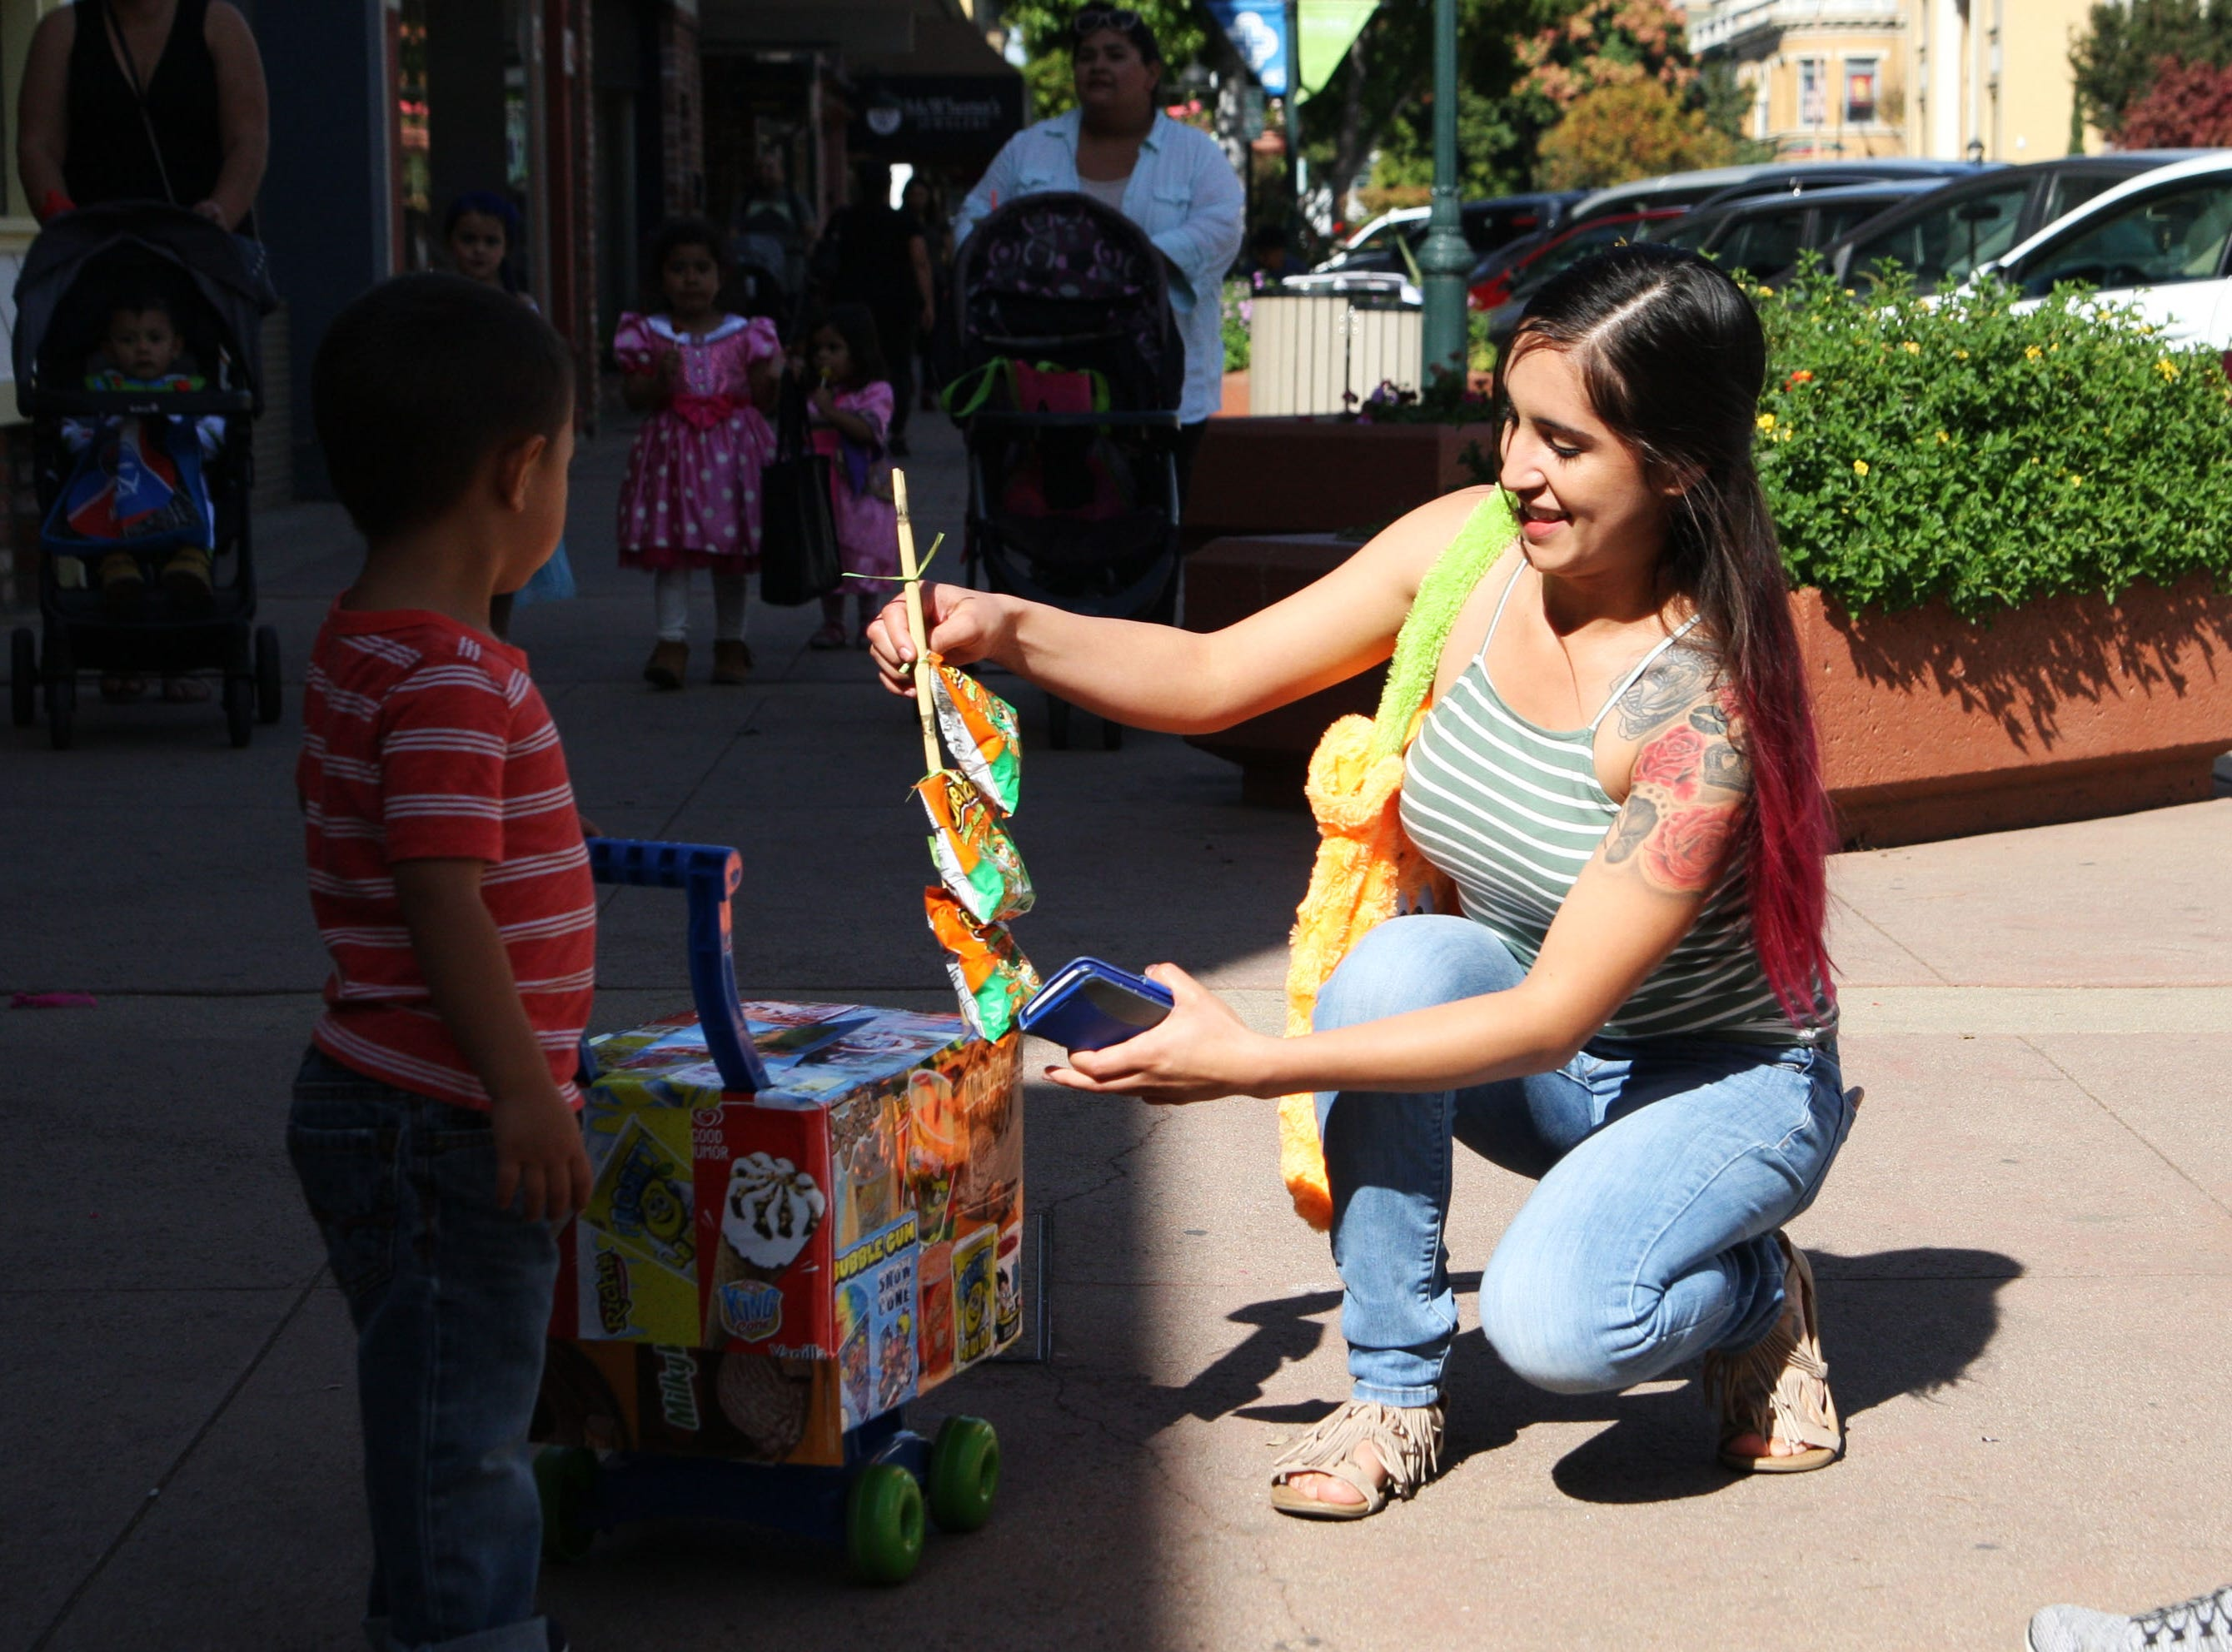 """Brenda Samano helps her son, Angelo Raya, 2, with his paletero costume in Oldtown Saturday. """"He loves ice cream and he always chases after (the paletero), so I made this costume,"""" said Samano. """"He loves it, he wouldn't let it go."""""""